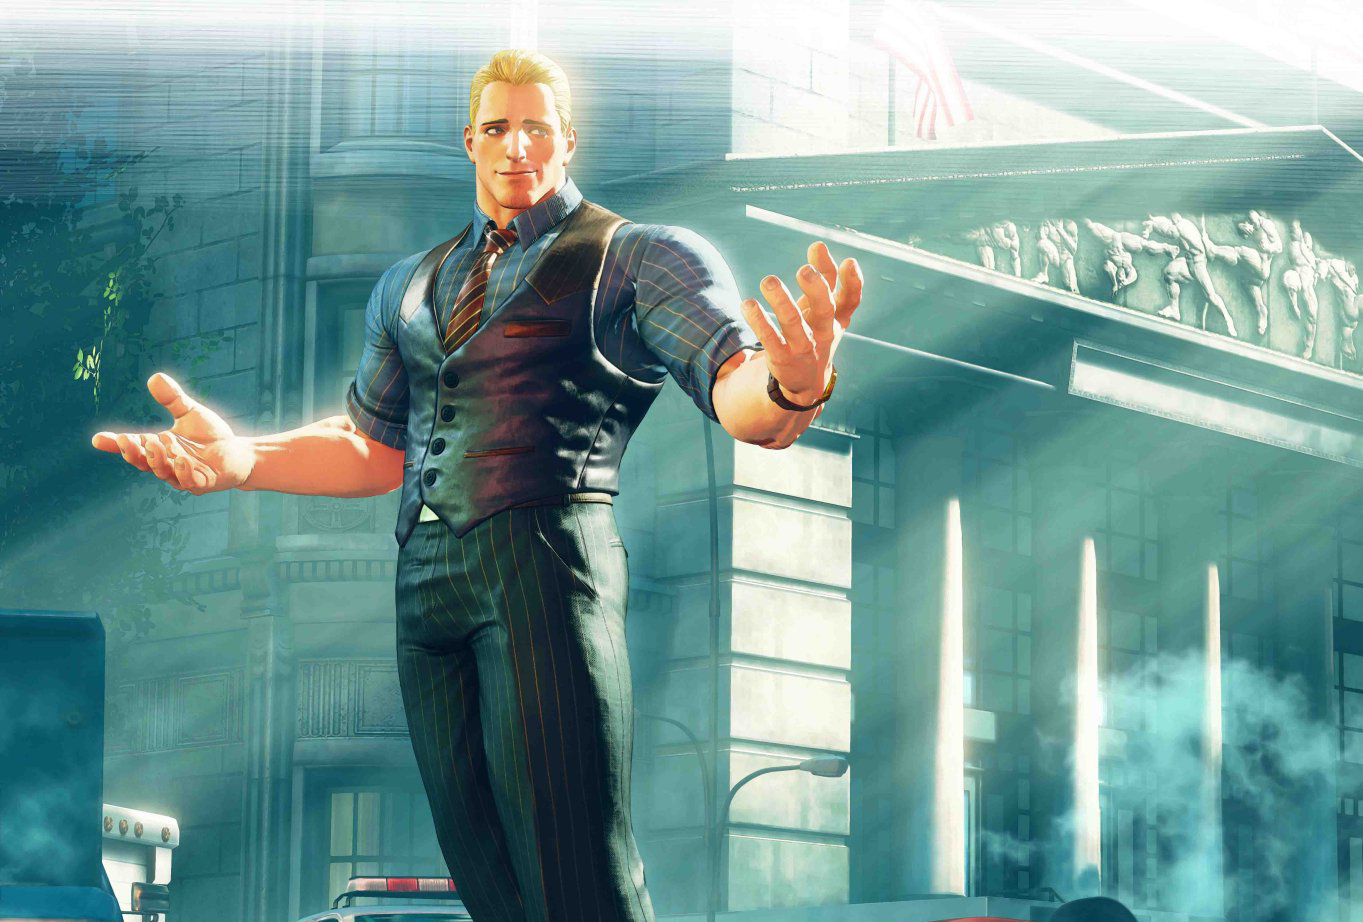 Cody looks thicc in Street Fighter V: Arcade Edition screenshot